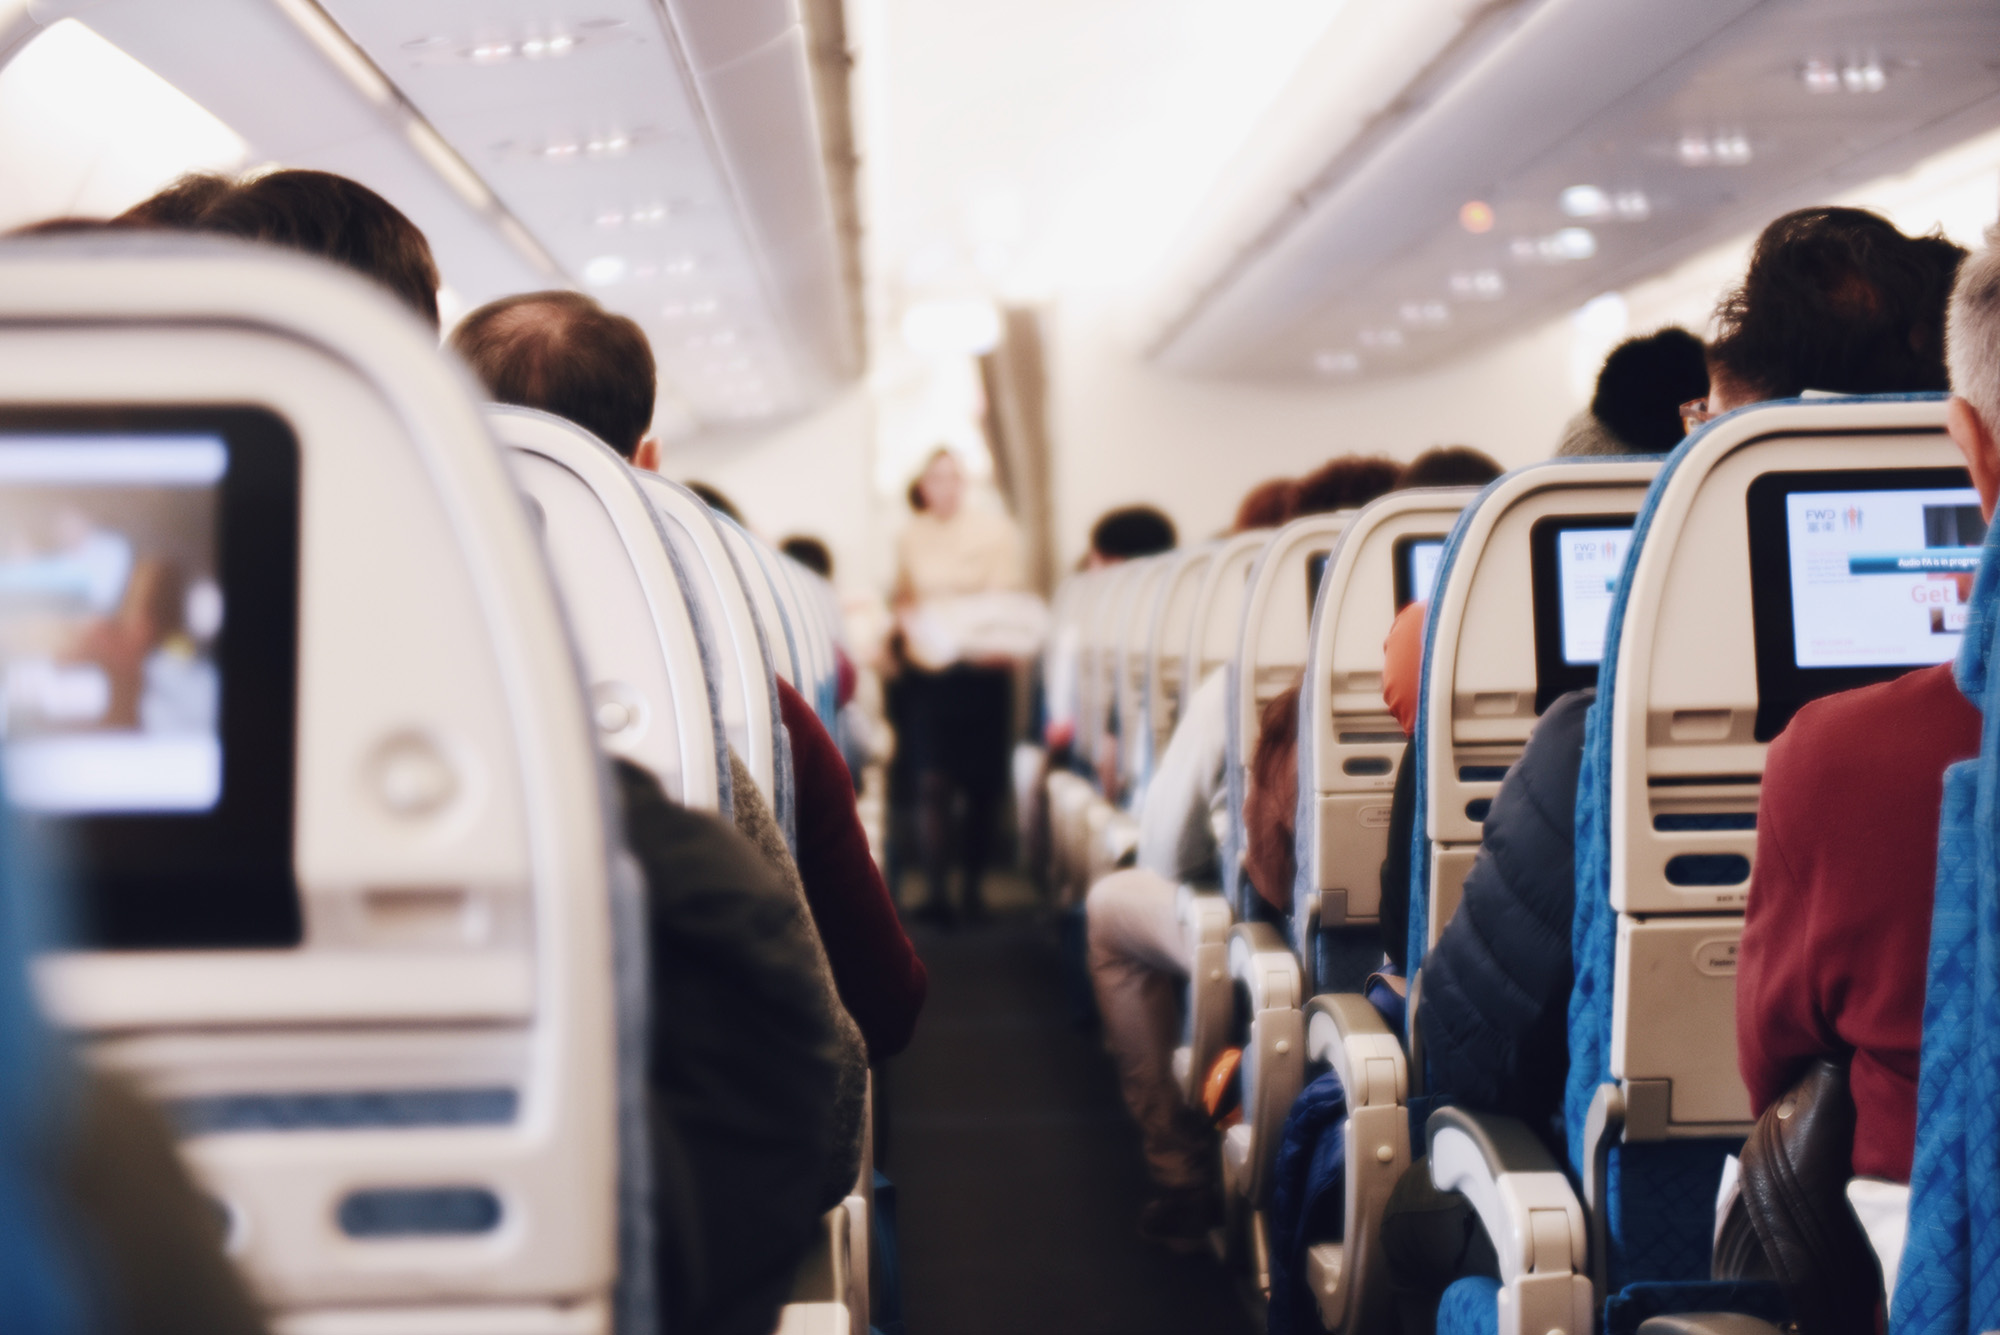 Rows of airline passenger seats